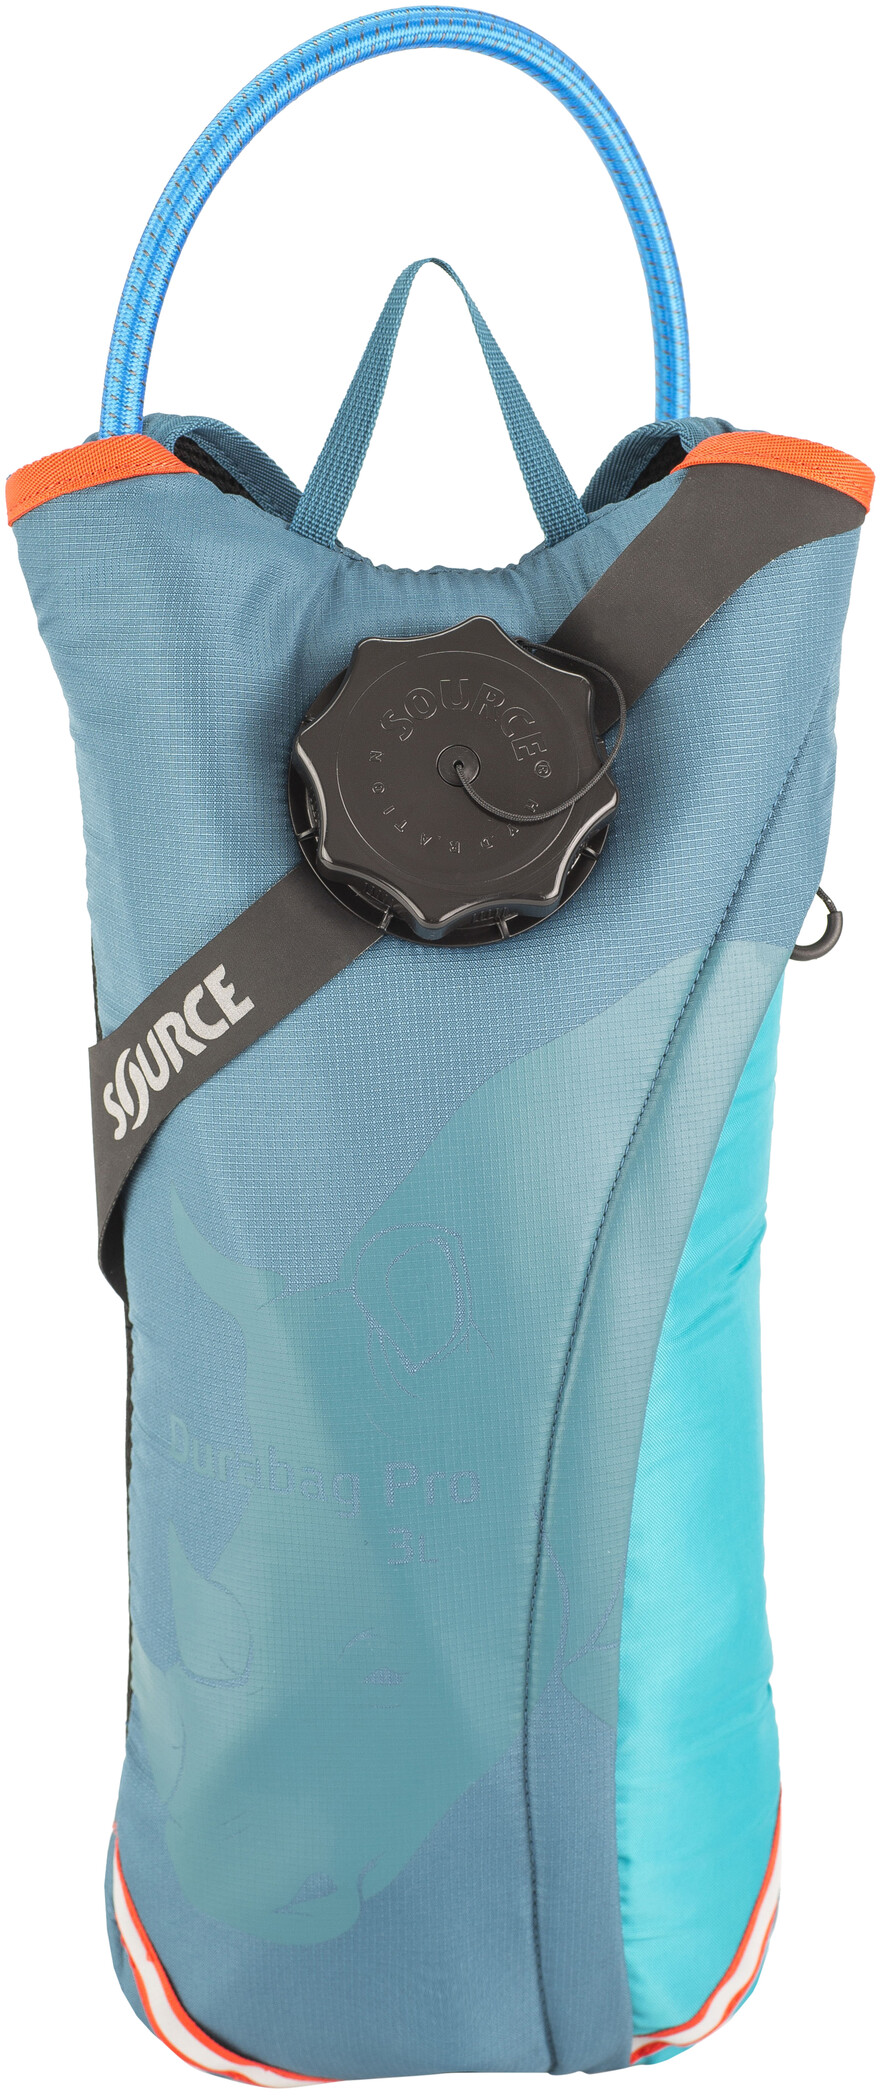 SOURCE Durabag Pro Hydration Pack medium, coral blue (2019) | item_misc